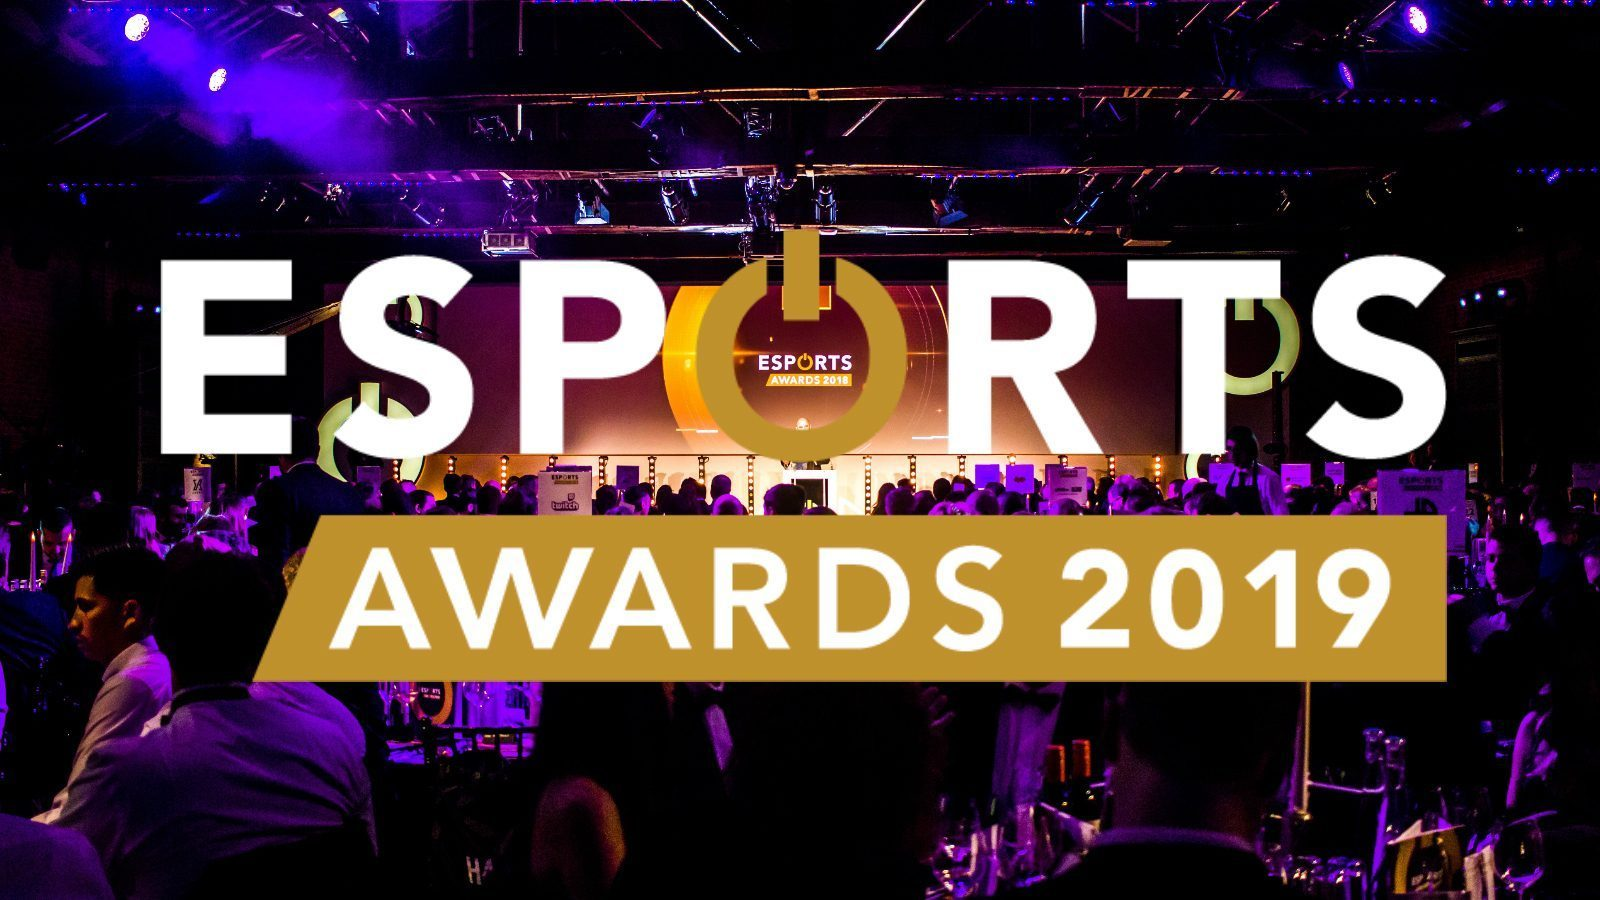 Winners of 2019 Esports Awards Announced